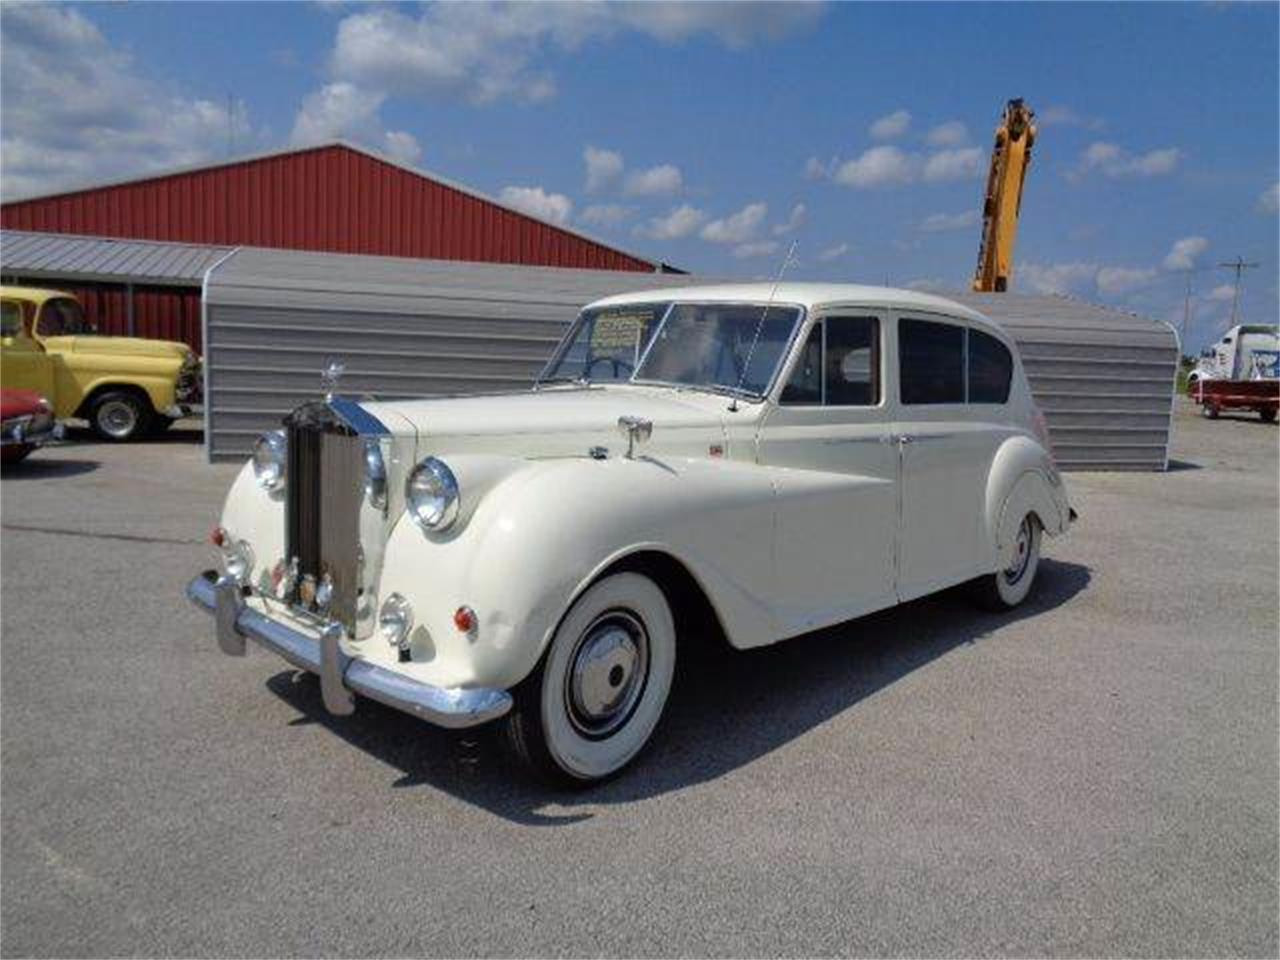 Limo For Sale >> 1964 Austin Princess Limo For Sale Classiccars Com Cc 1015150